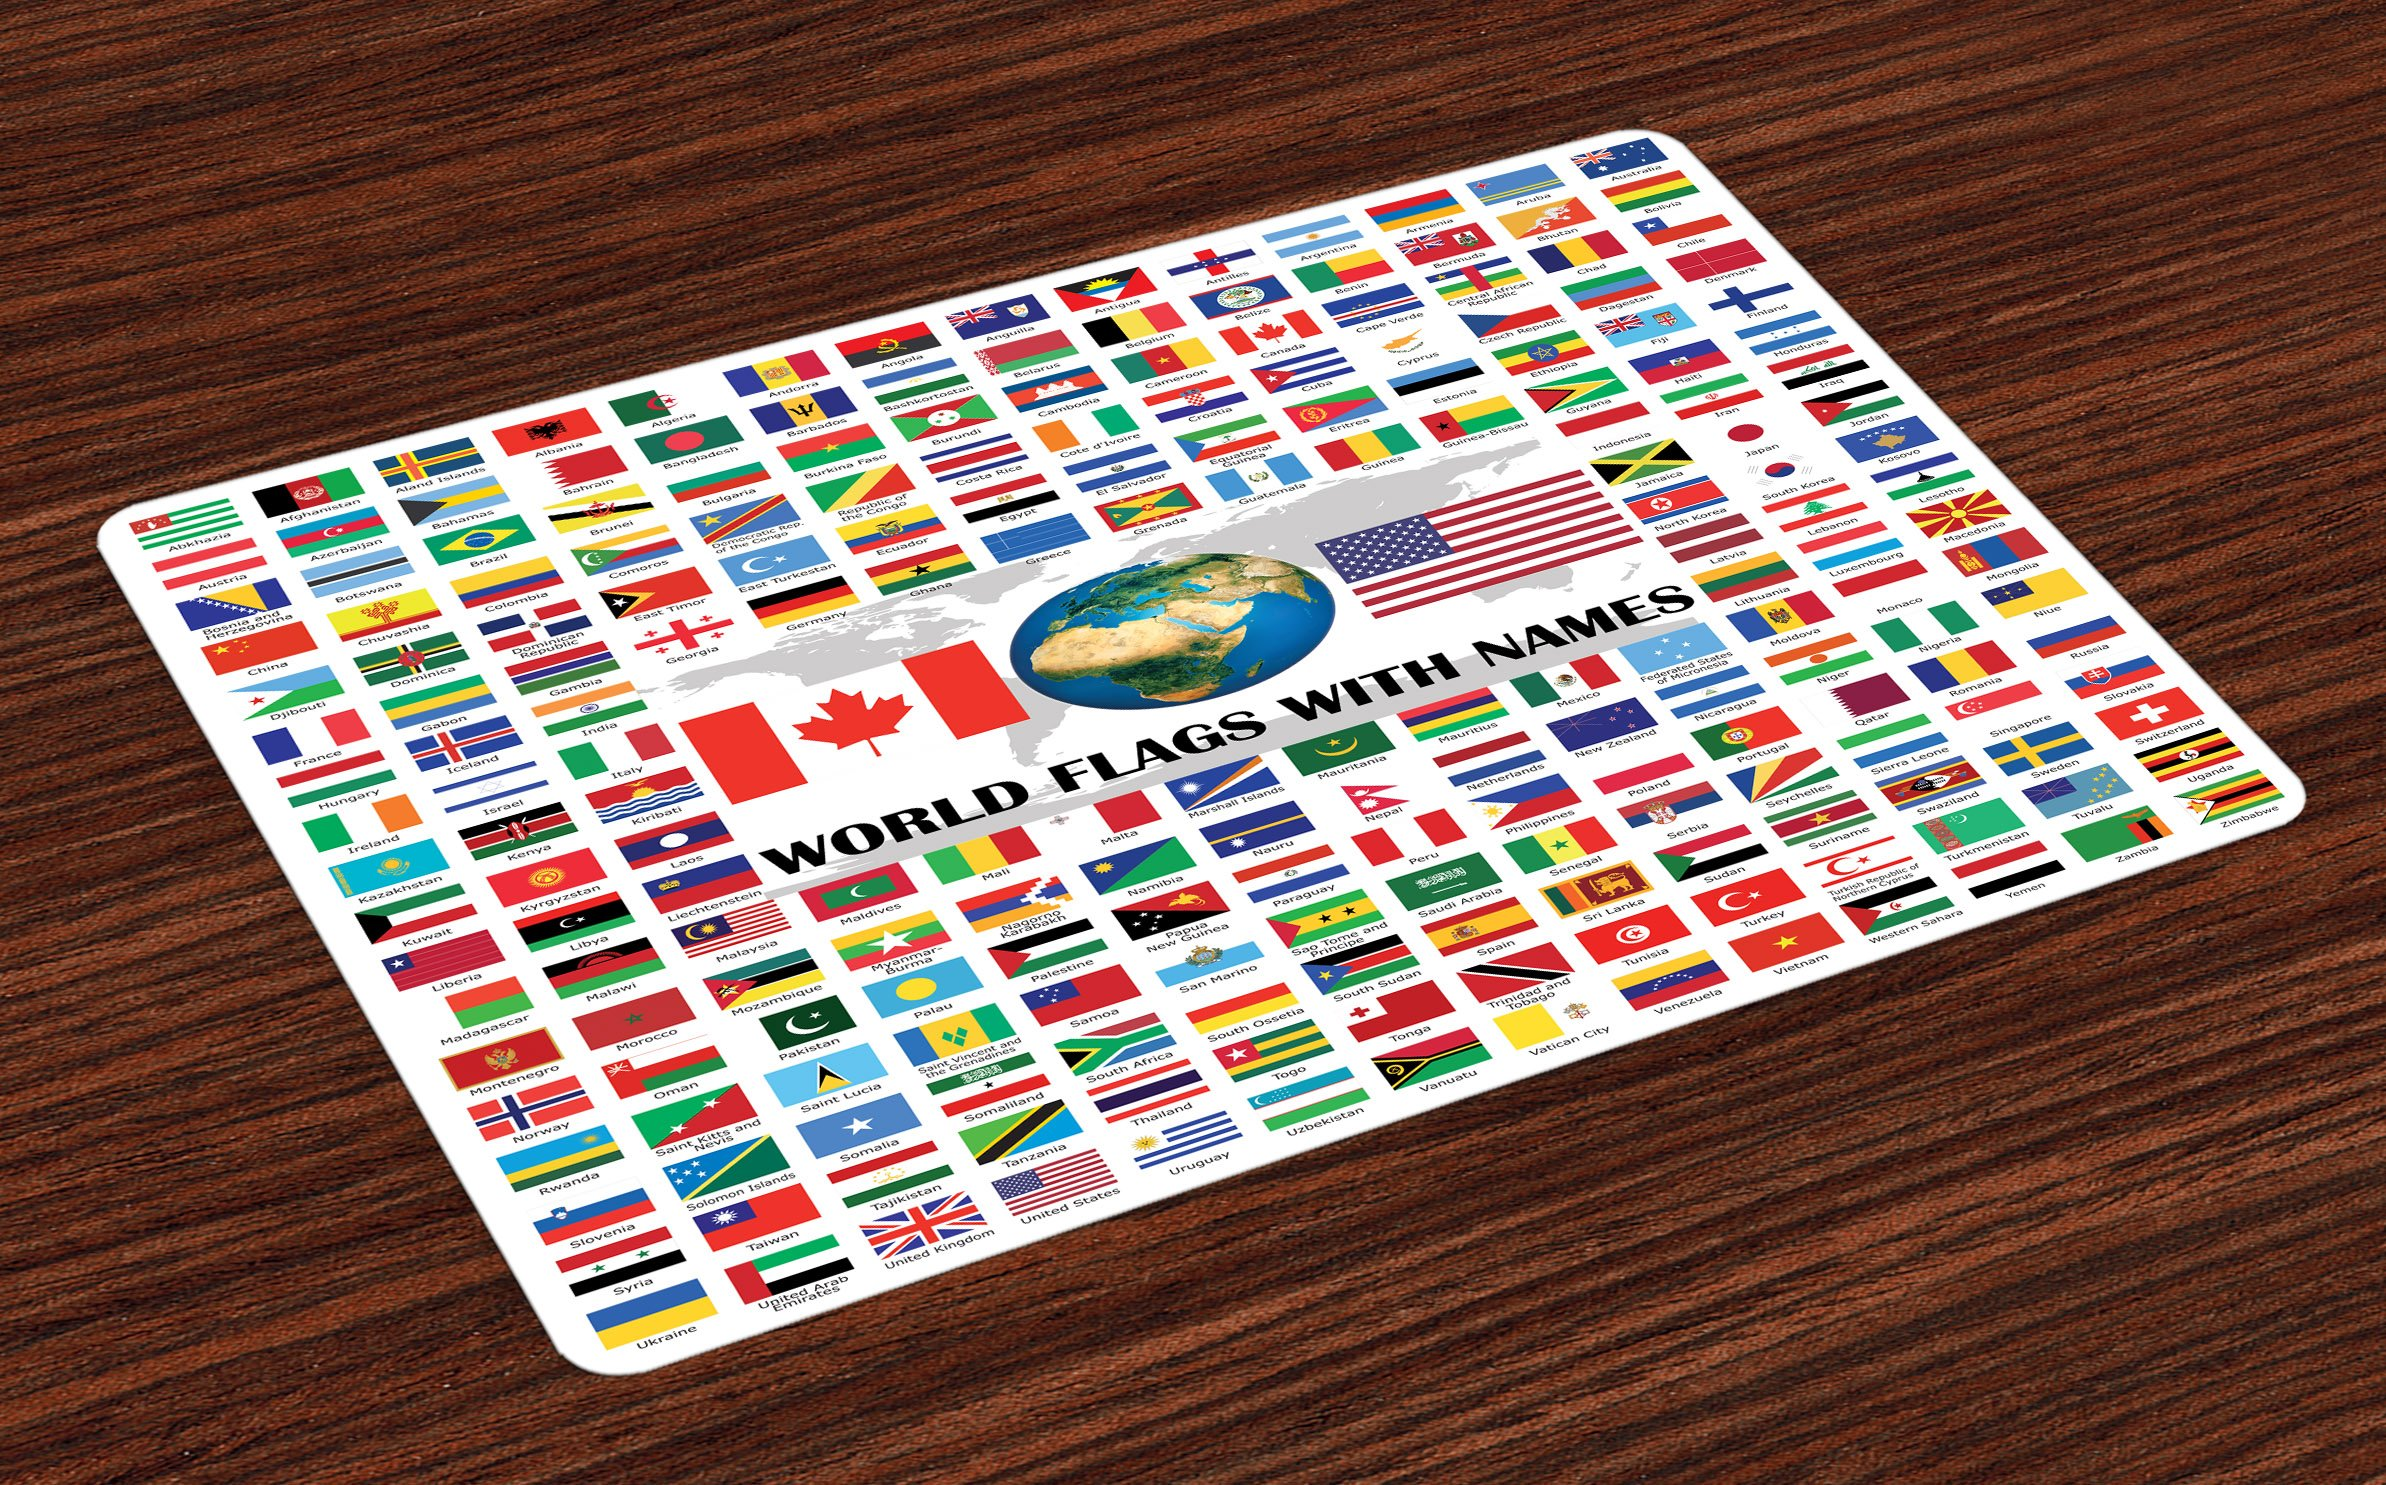 Ambesonne Flags Place Mats Set of 4, Big Collection of World Flags with Names Different Countries Nationalities Patriotic, Washable Fabric Placemats for Dining Room Kitchen Table Decor, Multicolor by Ambesonne (Image #1)